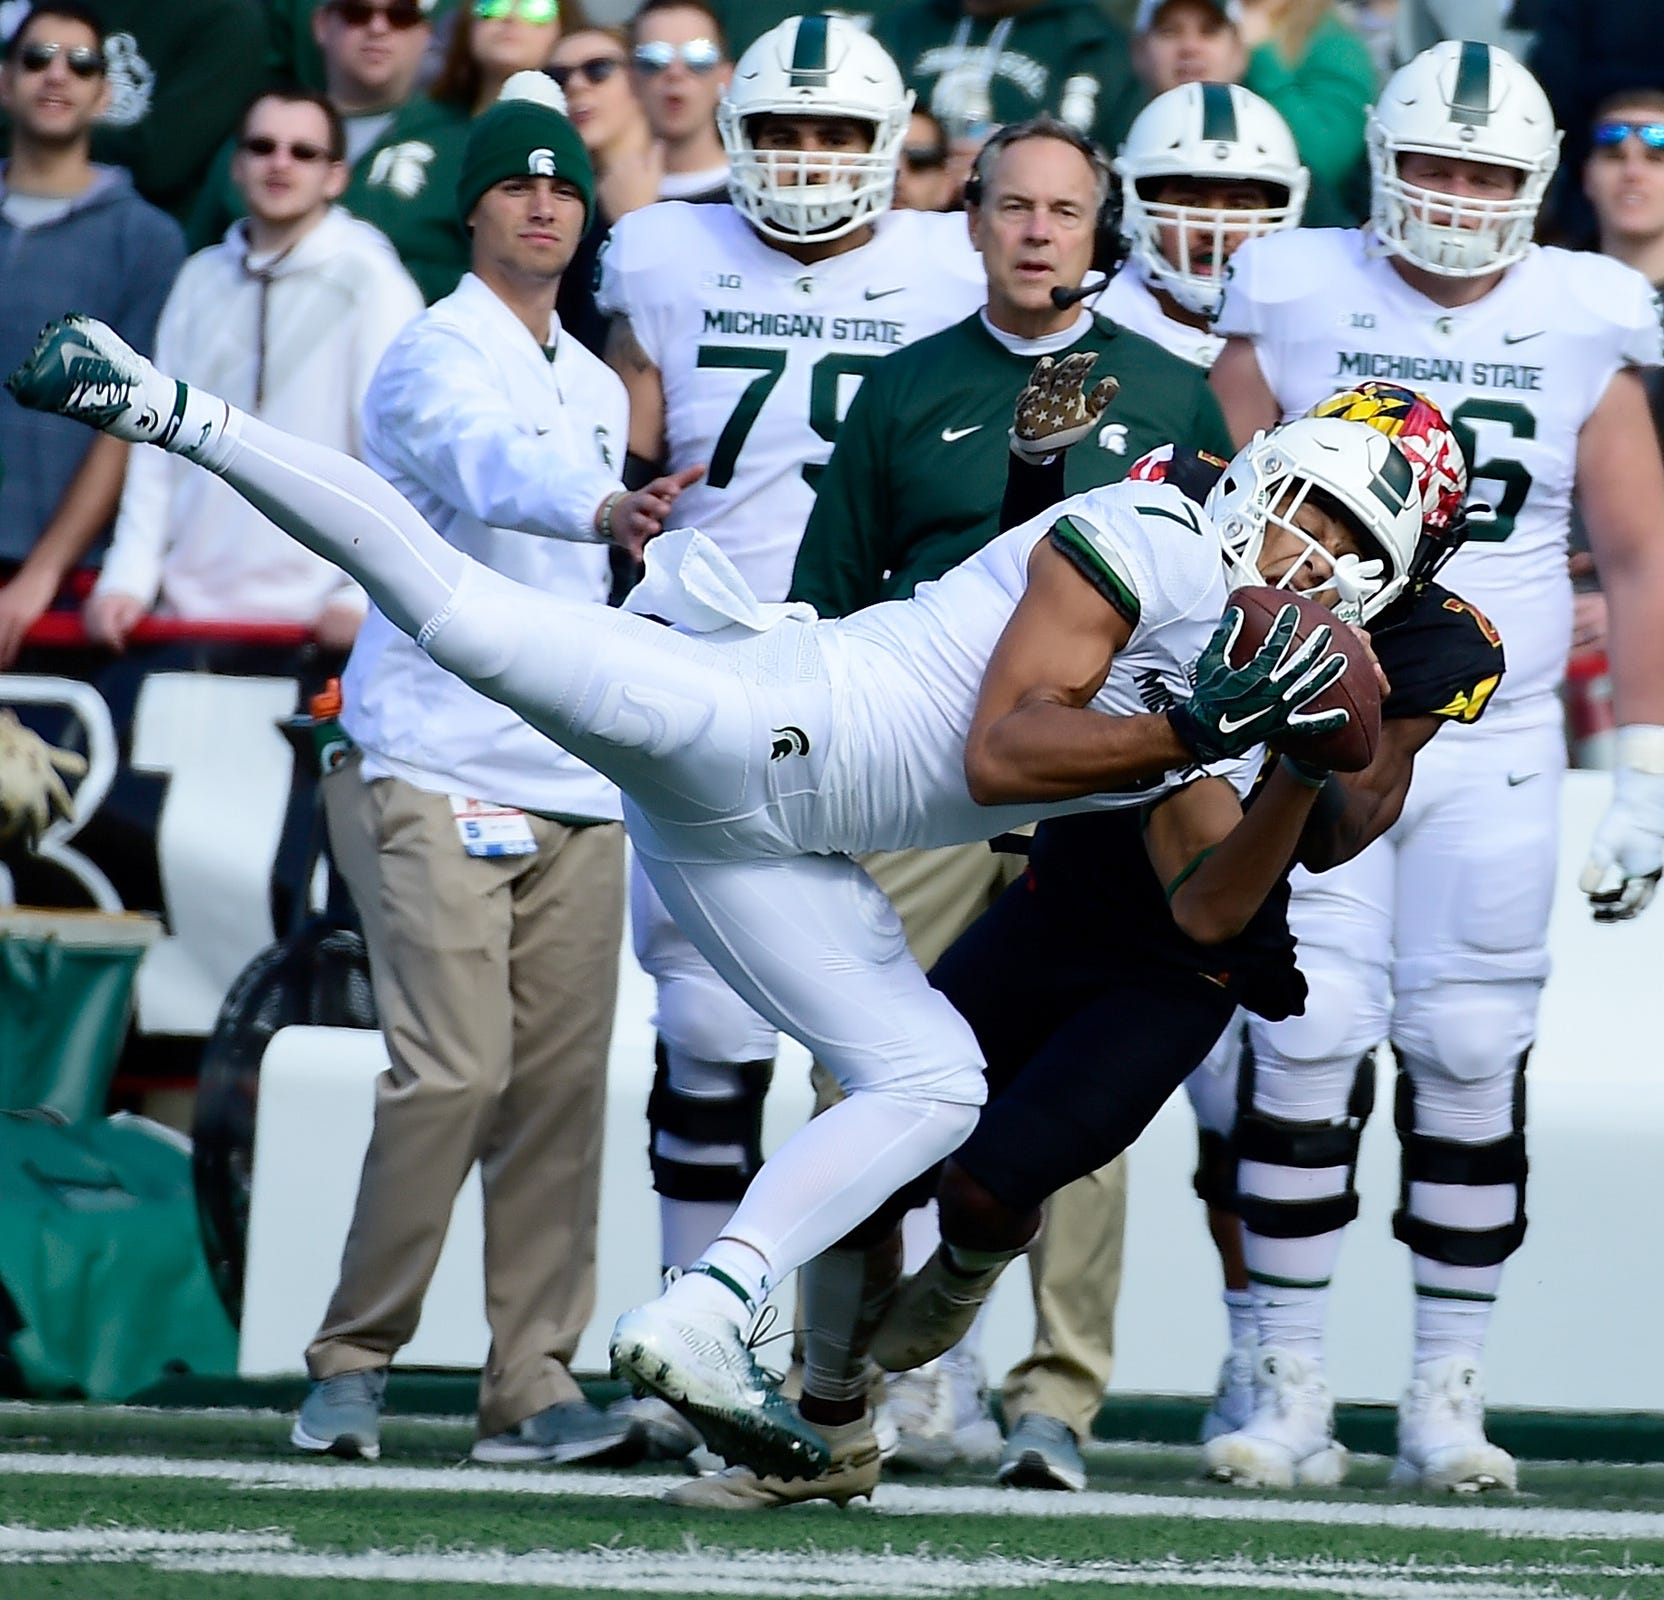 Michigan State wide receiver Cody White (7) catches a pass in front of Maryland defensive back RaVon Davis (2) during the first quarter on Saturday, Nov. 3, 2018, at Capital One Field at Maryland Stadium.